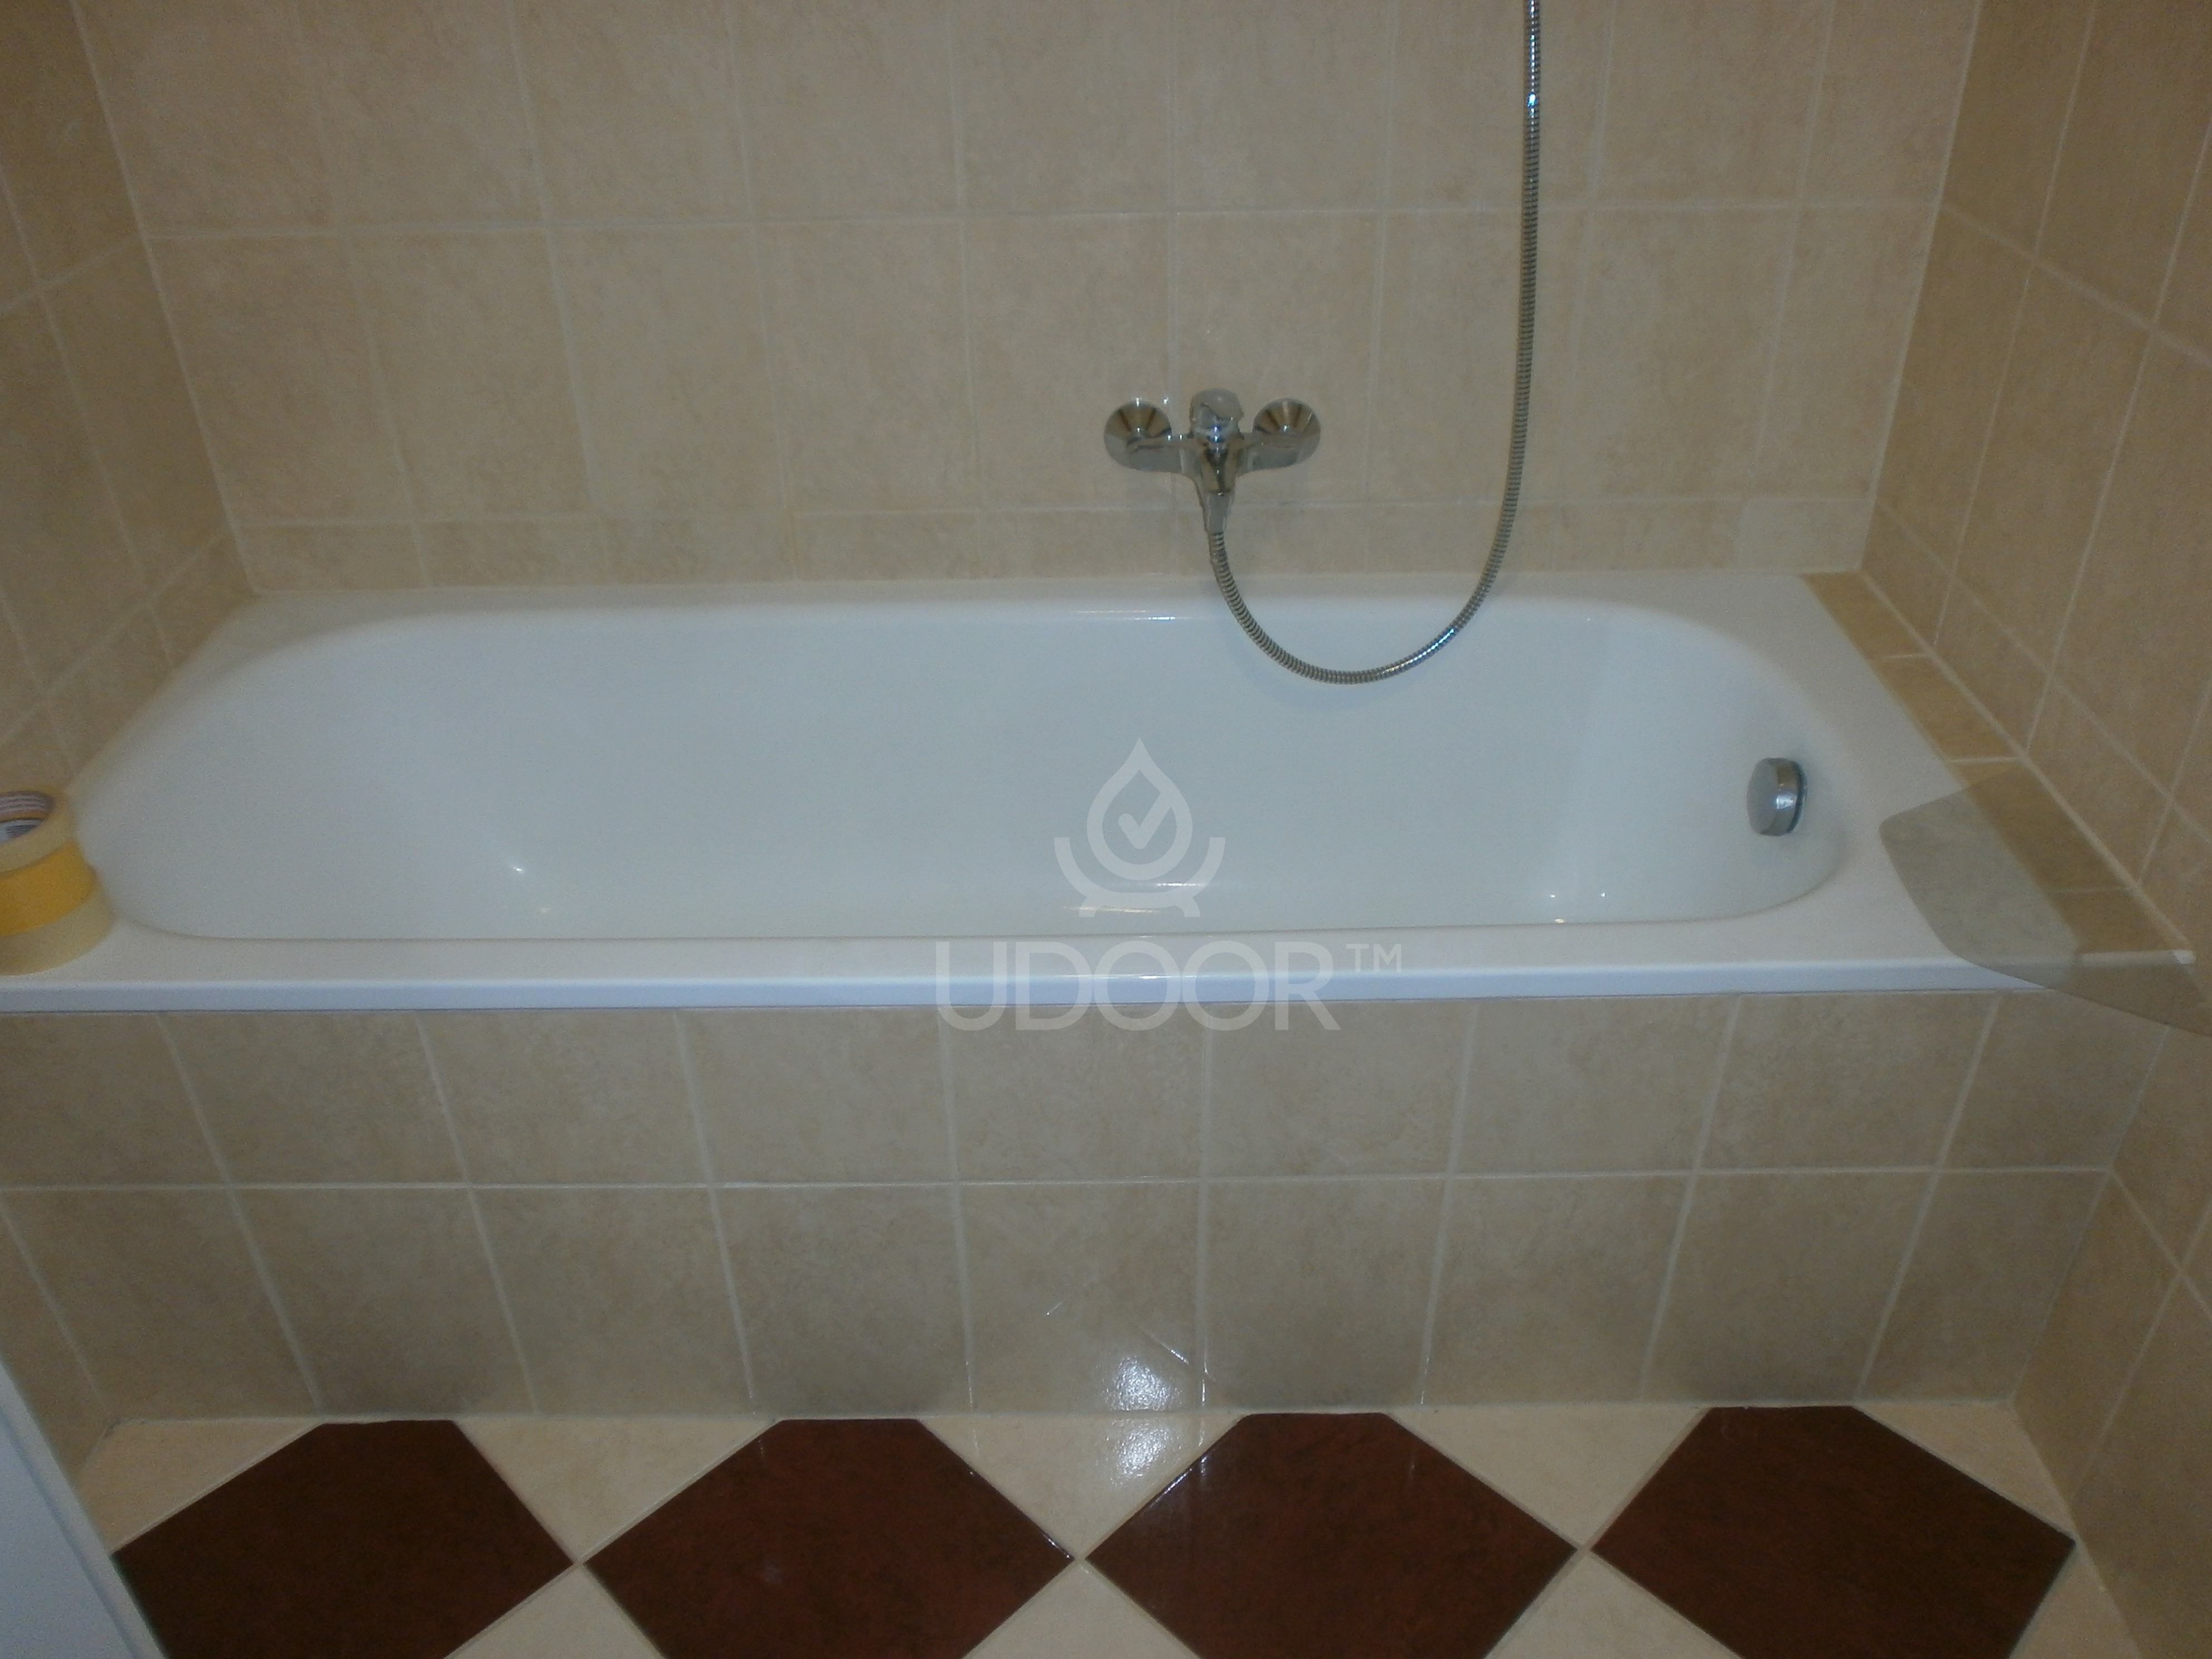 Sheet metal bathtub with brick wall - UDOOR - Bathtub door